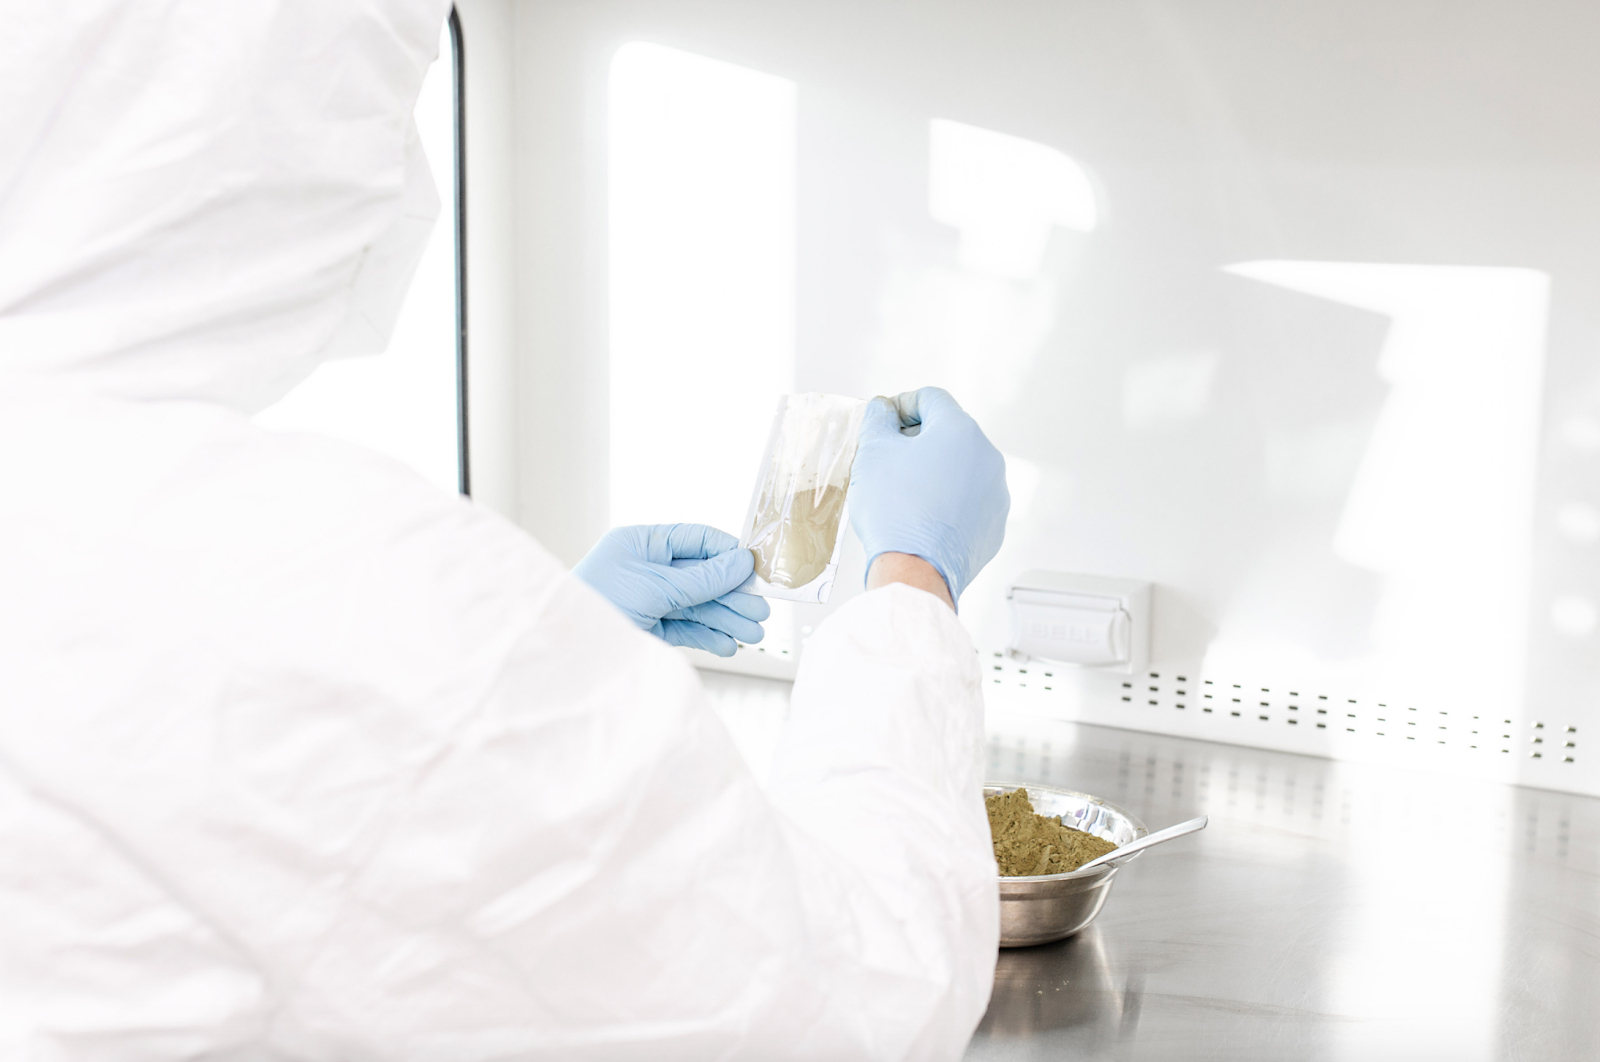 Image of Happy Hippo production lab worker filling a 1oz packet of kratom powder